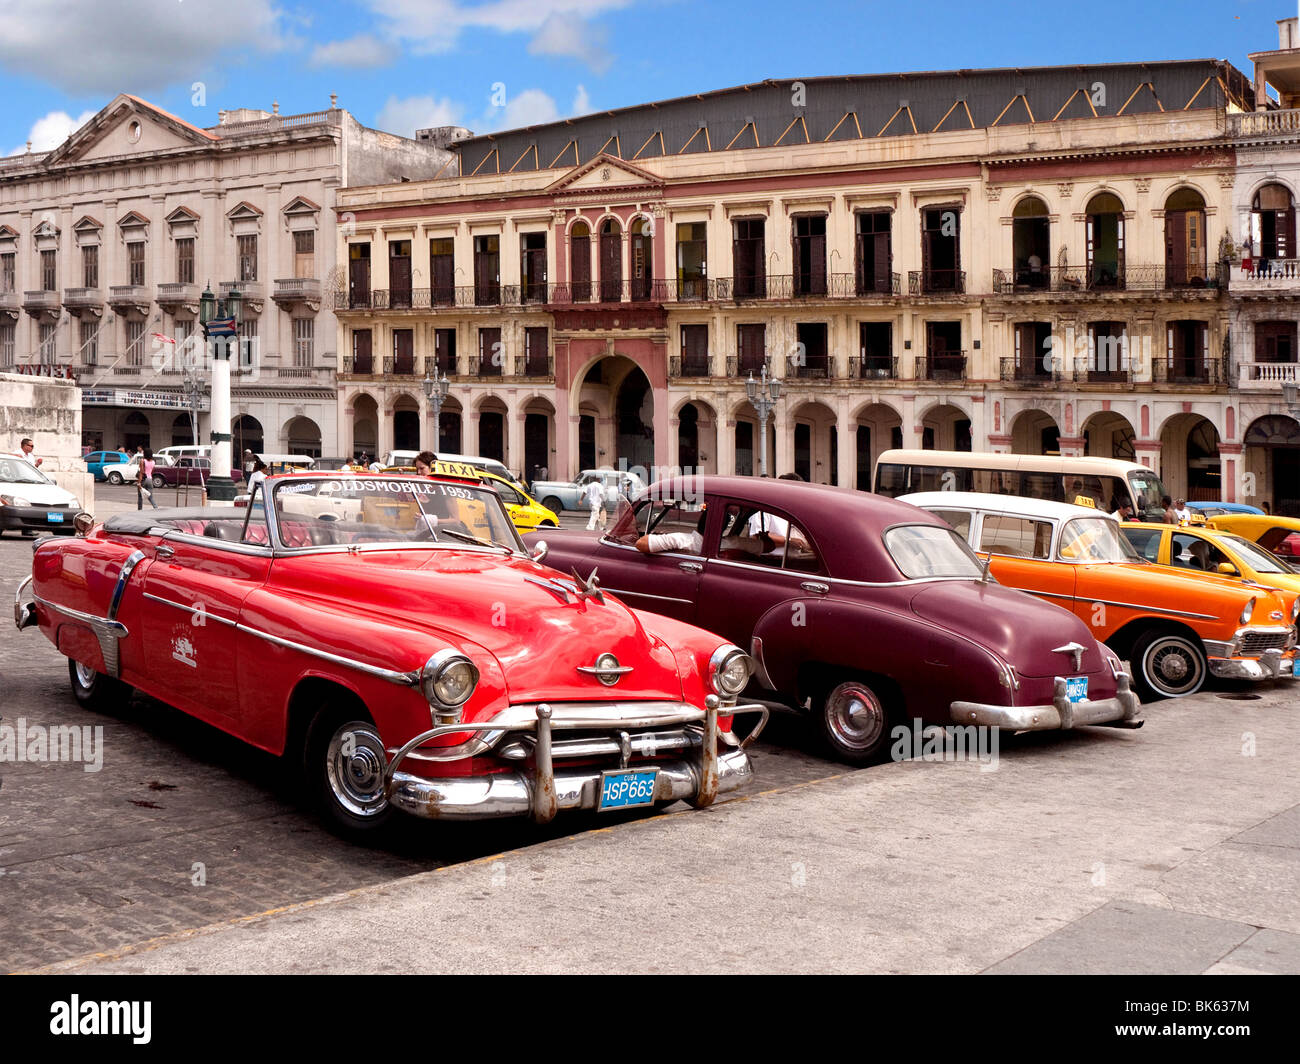 1950er jahre amerikanische autos in der altstadt von havanna havanna kuba stockfoto bild. Black Bedroom Furniture Sets. Home Design Ideas